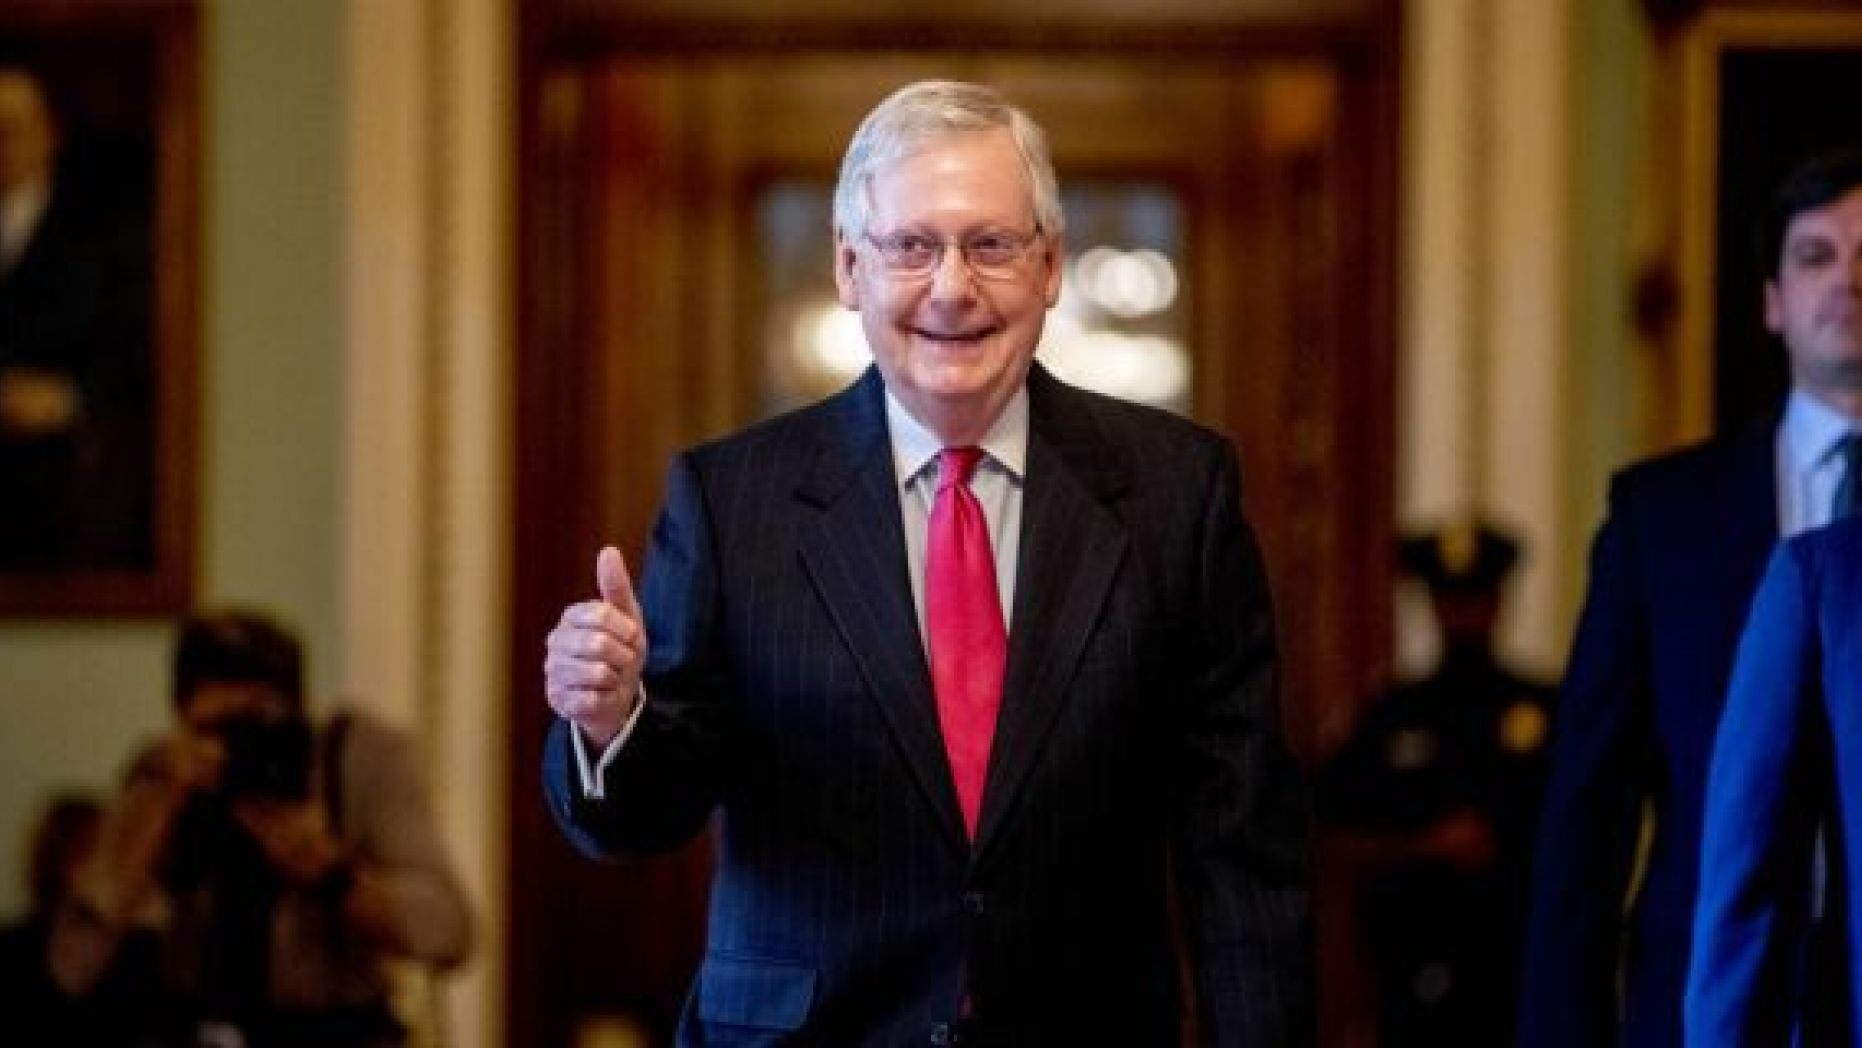 Senate Majority Leader Mitch McConnell of Ky. gives a thumbs up as he leaves the Senate chamber on Capitol Hill in Washington. (AP Photo/Andrew Harnik)